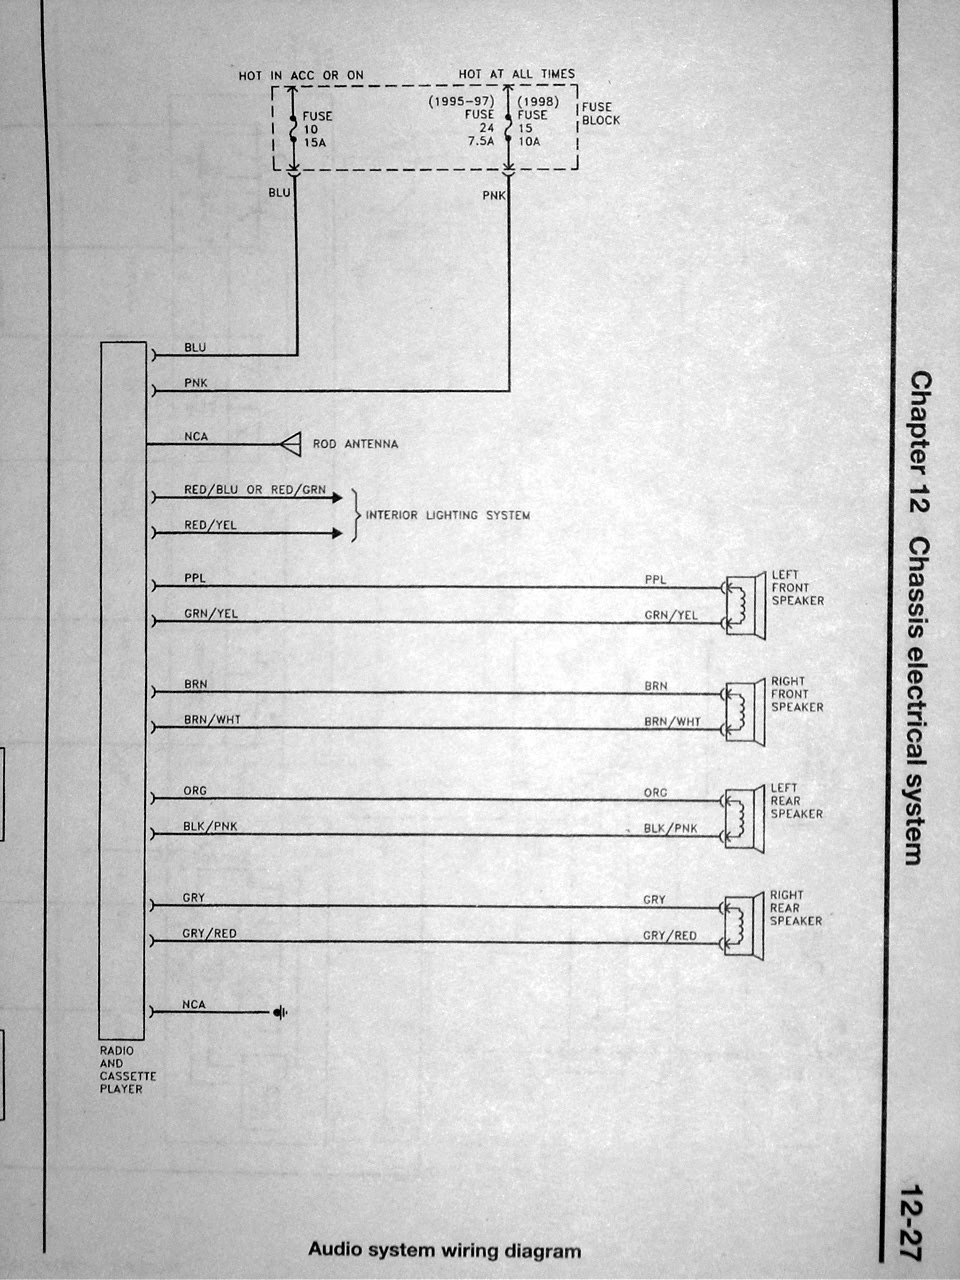 6ad3 Nissan Maxima Radio Wiring Diagram Wiring Diagram Library